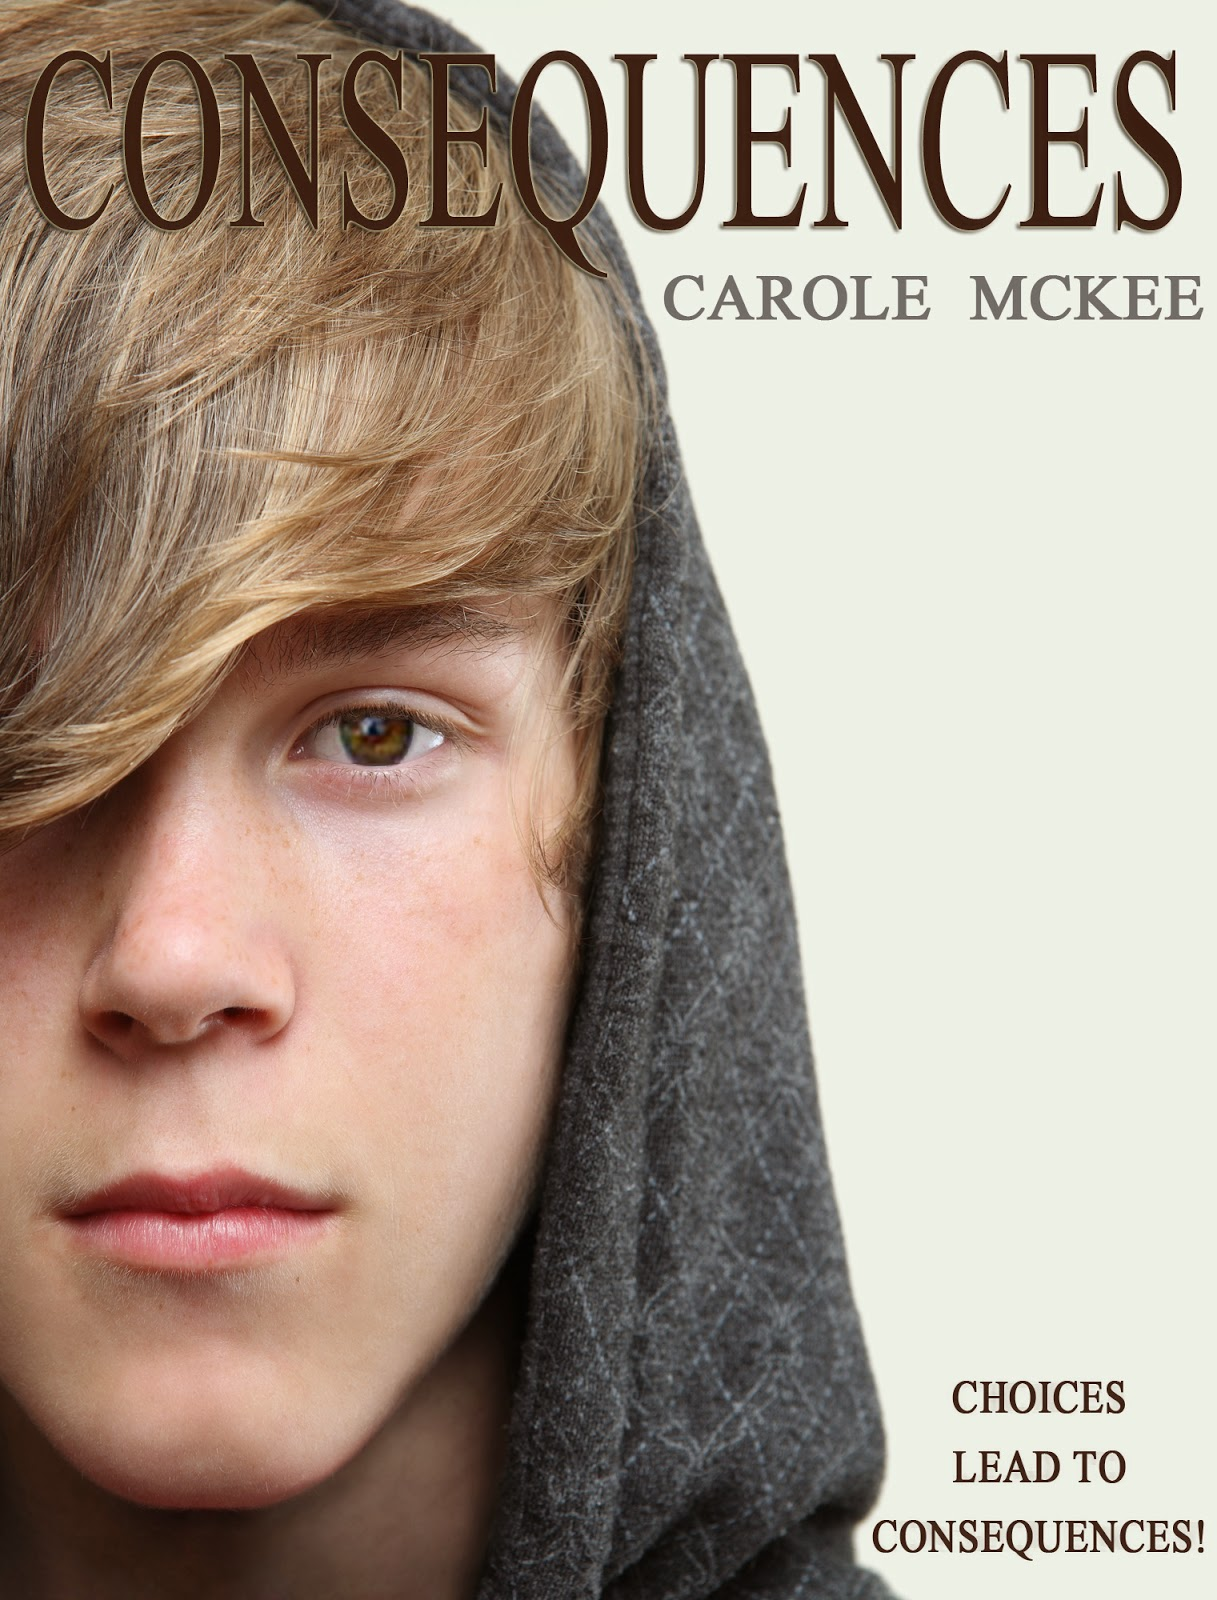 http://www.amazon.com/Consequences-Choices-4-Carole-McKee/dp/1482734370/ref=la_B0082D3810_1_3?s=books&ie=UTF8&qid=1402898660&sr=1-3